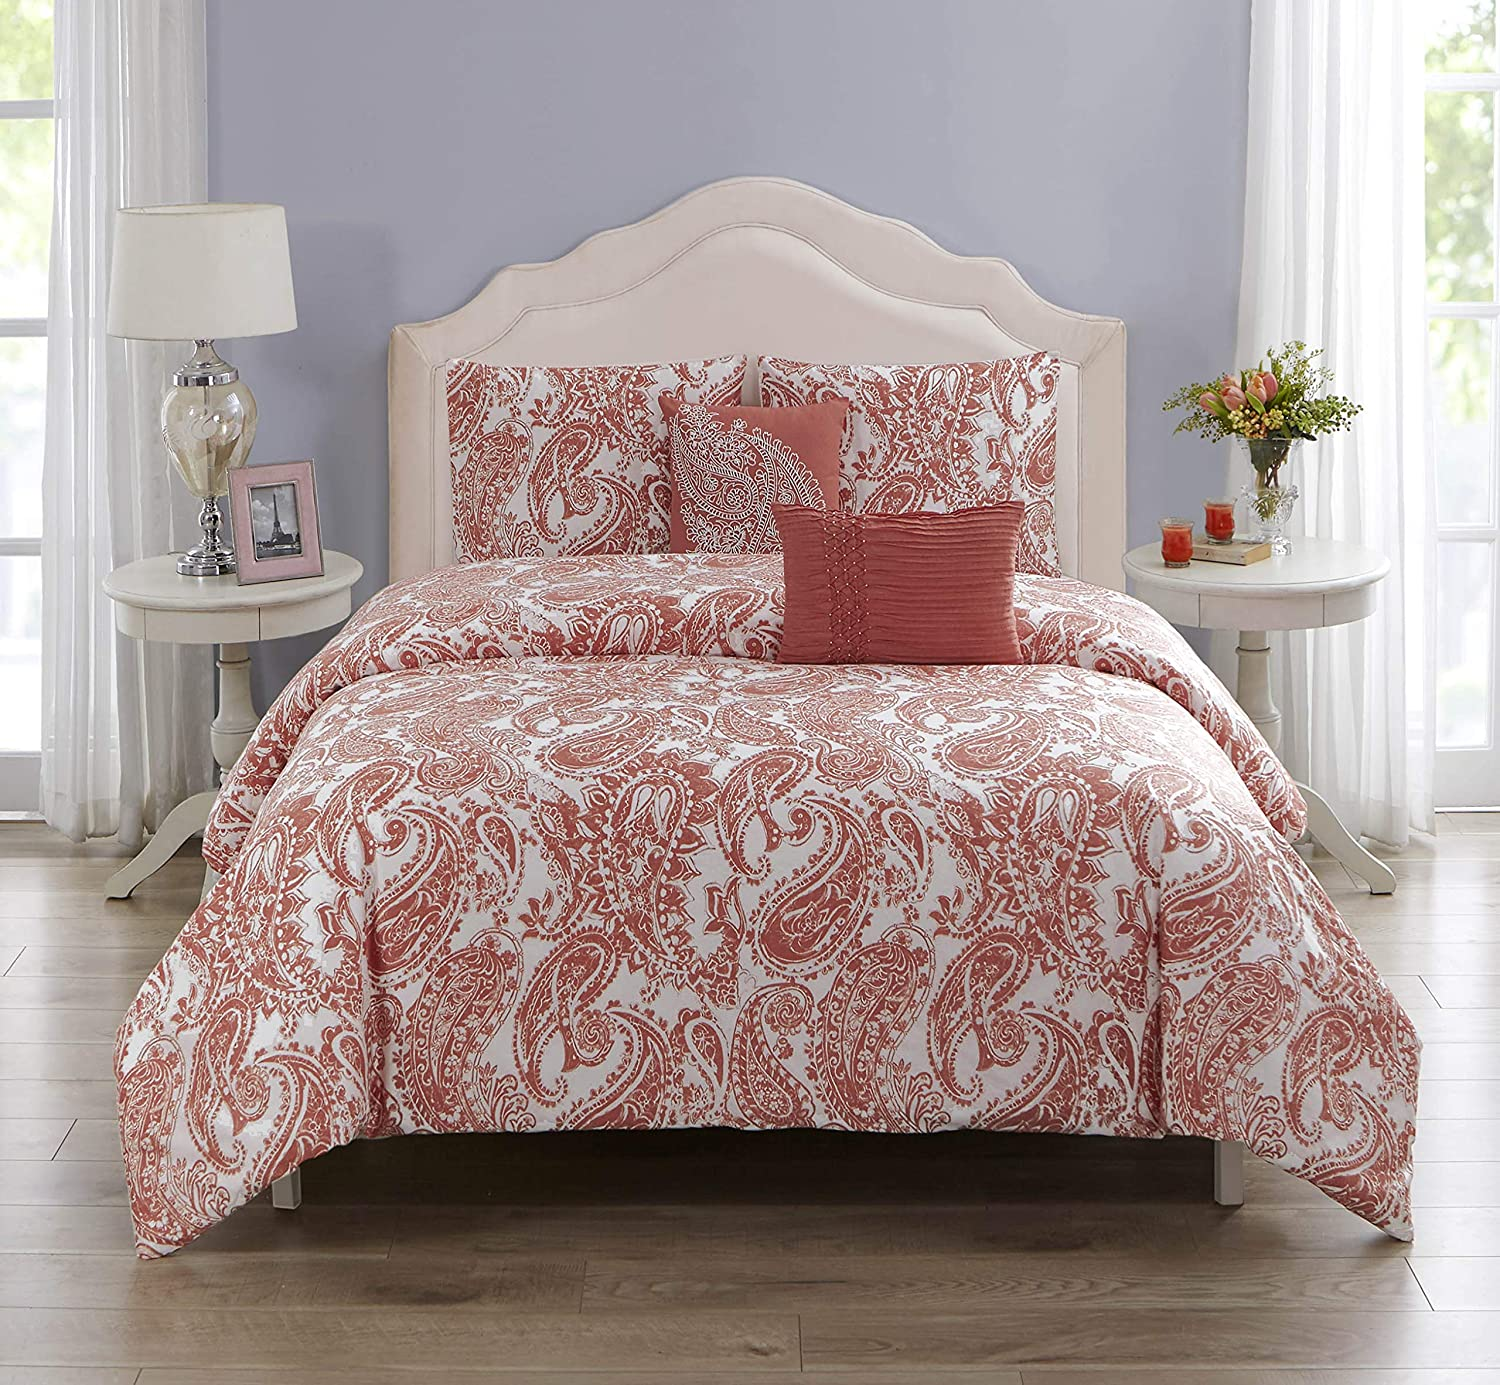 Oversized Comforter Overfilled with Down Alternative 2 Pillows Pintuck Luxury Comforter with 2 Shams Wonder Home 5-pc 92x96 92x96 SD Wonder Cotton Shell Valentines Coral Paisley Comforter Set Queen